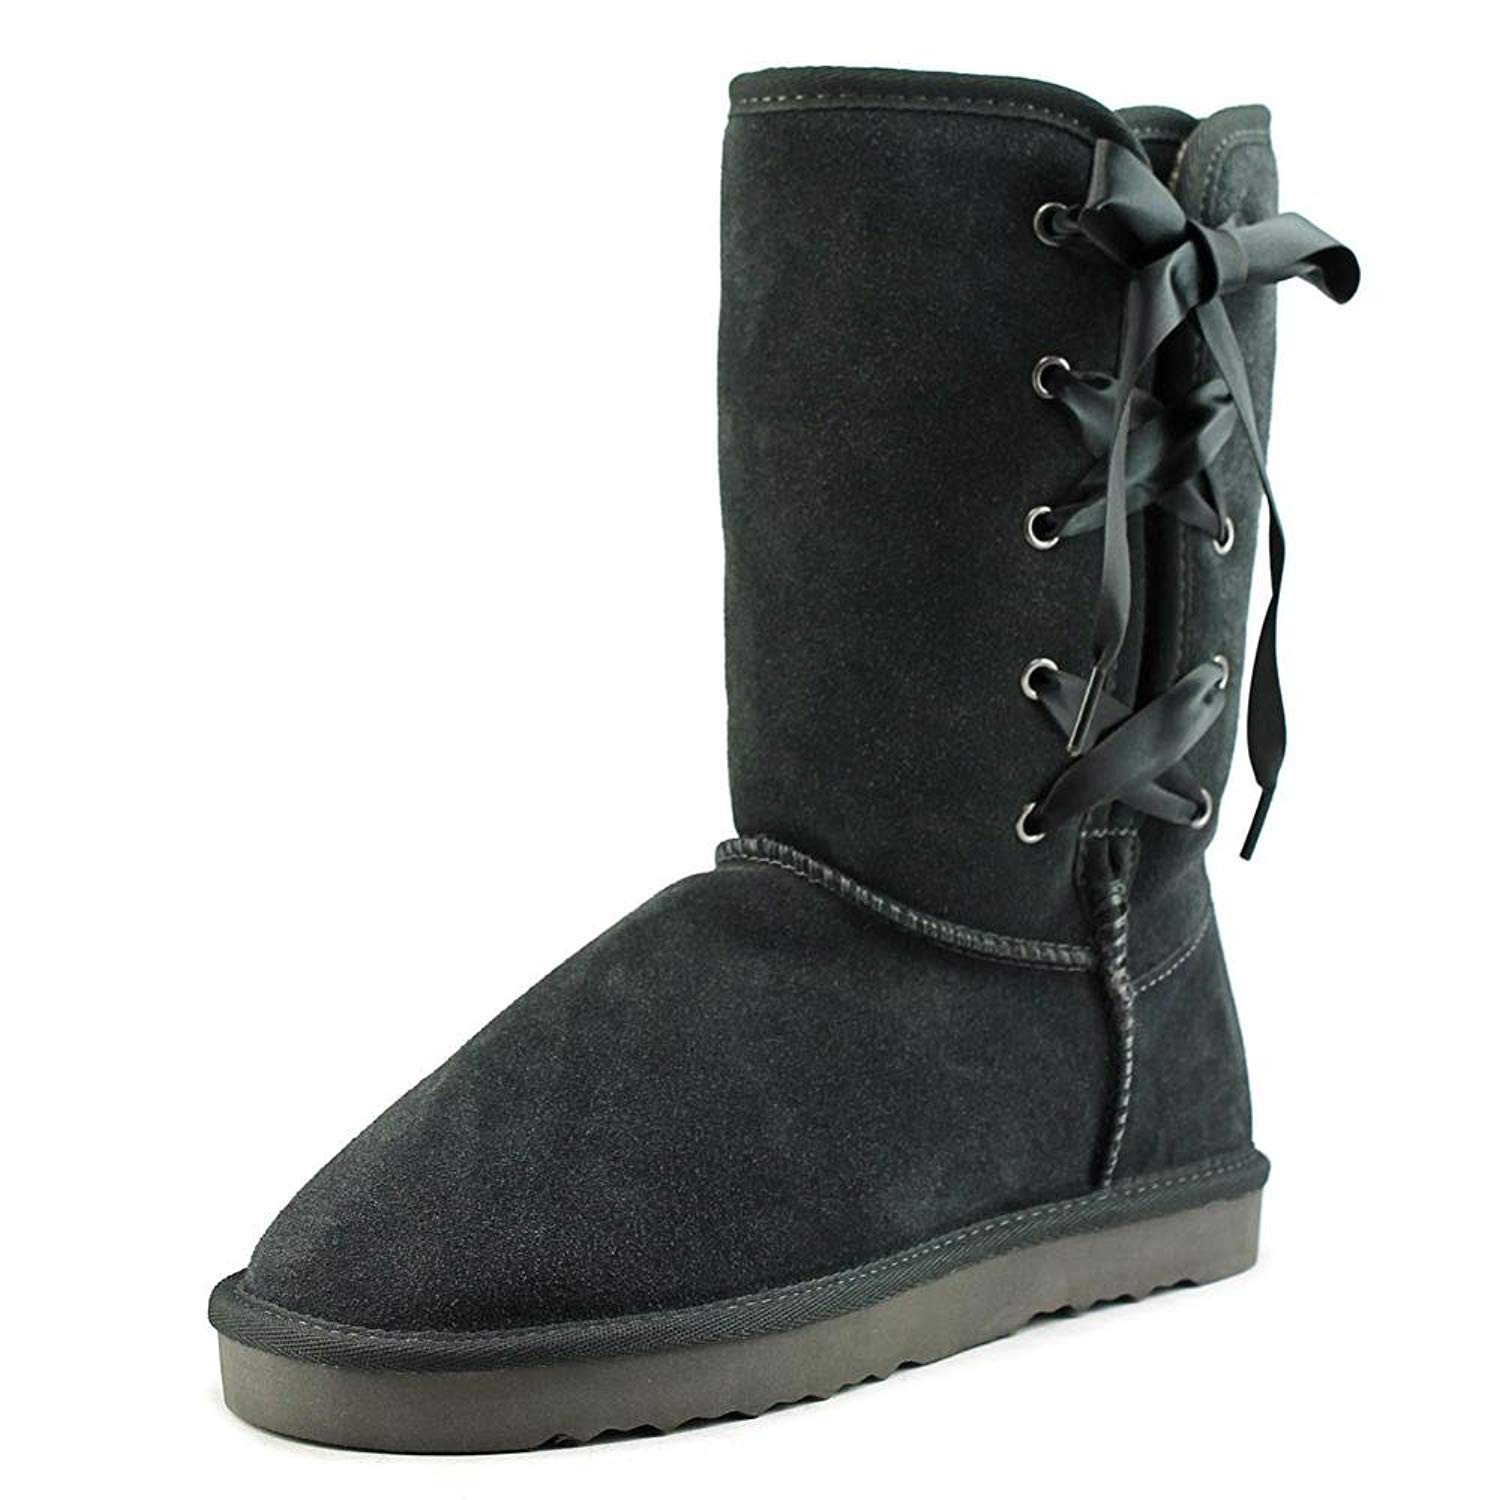 Style & Co. Womens Aliciah Leather Closed Toe Mid-Calf Fashion Boots Grey Size 10.0 US